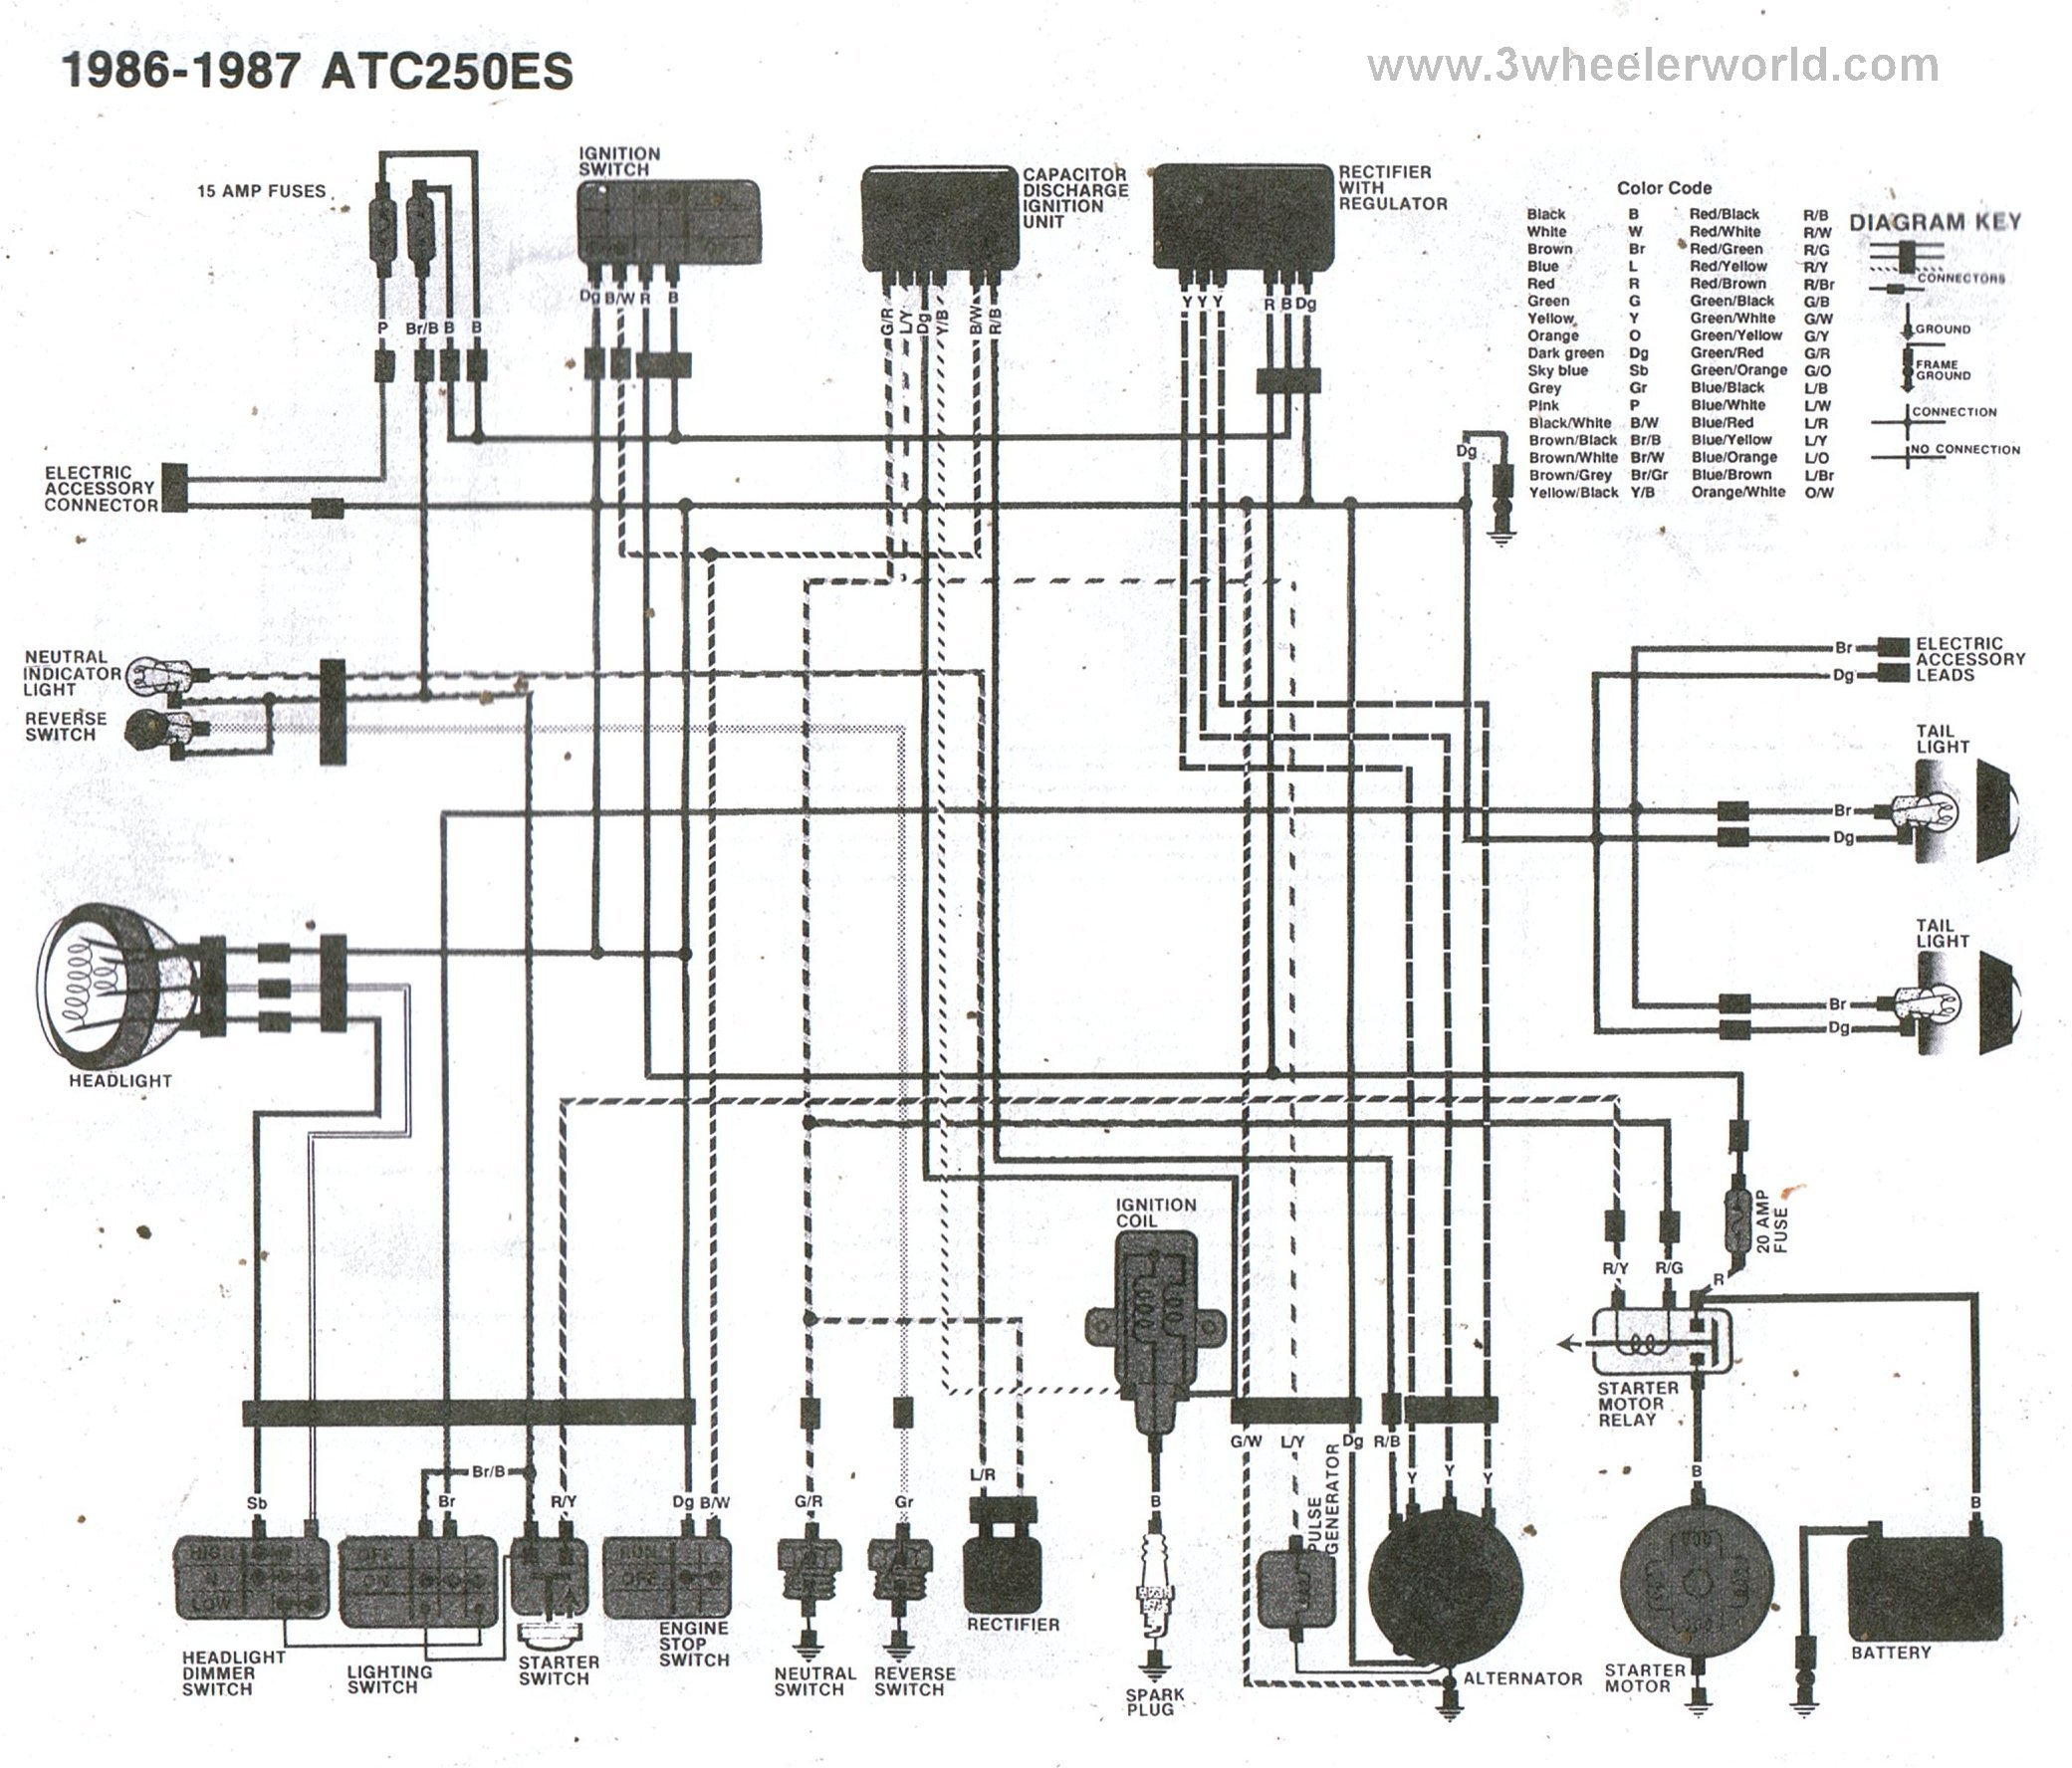 ATC250ESx86Thru87 3 wheeler world tech help honda wiring diagrams on wiring diagram honda 250es